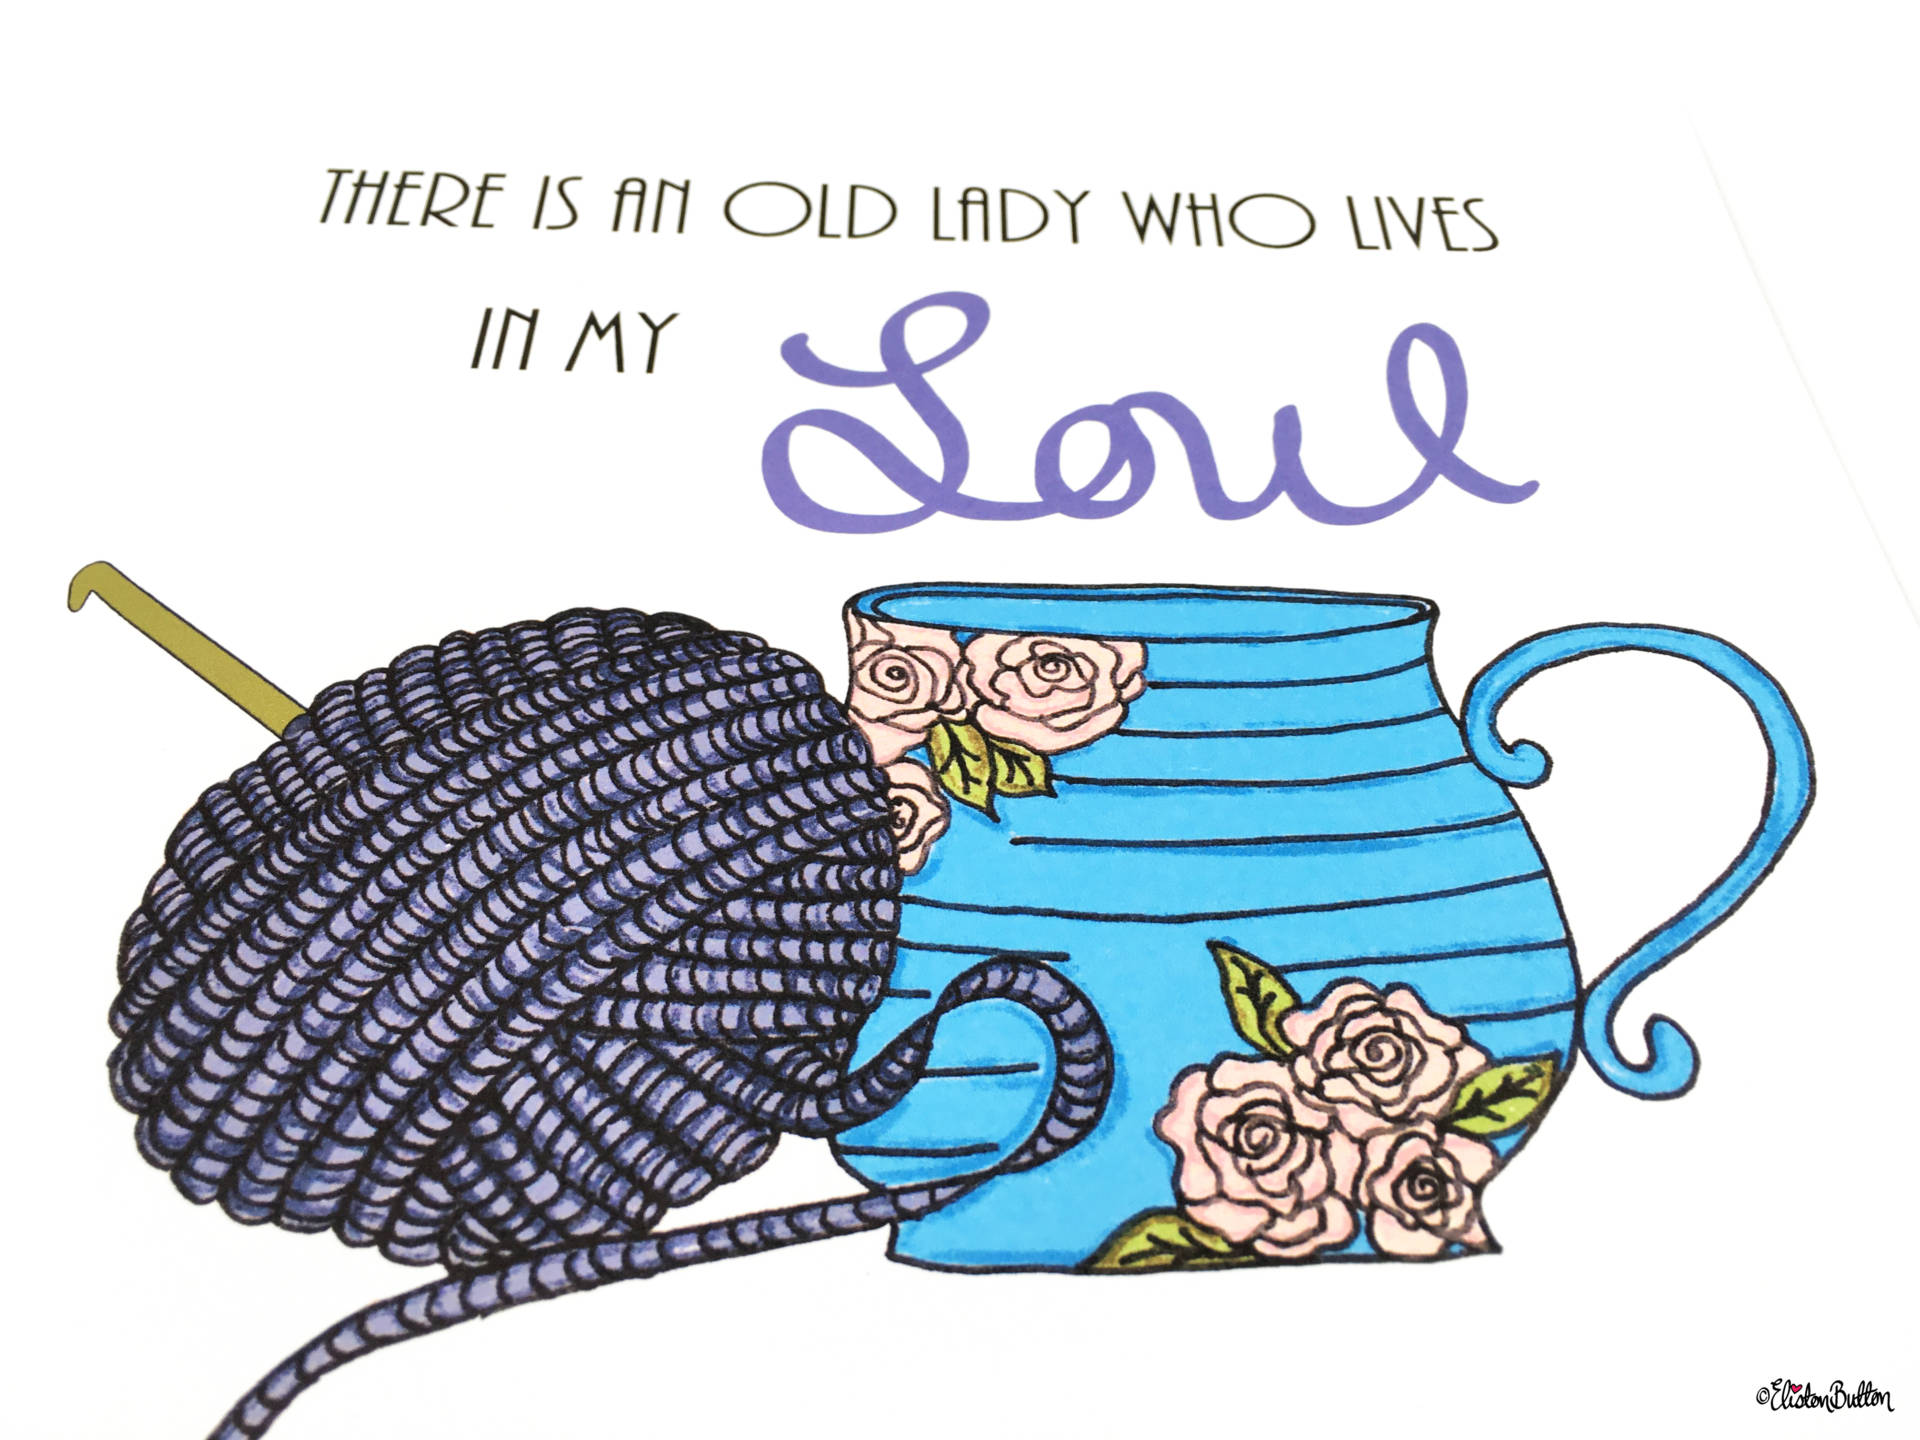 Crochet and Drink Tea Wall Art Print by Eliston Button Tea Cup and Yarn Illustration - Create 30 – No. 3 & 4 – Crochet Illustrated Quote Prints at www.elistonbutton.com - Eliston Button - That Crafty Kid – Art, Design, Craft & Adventure.